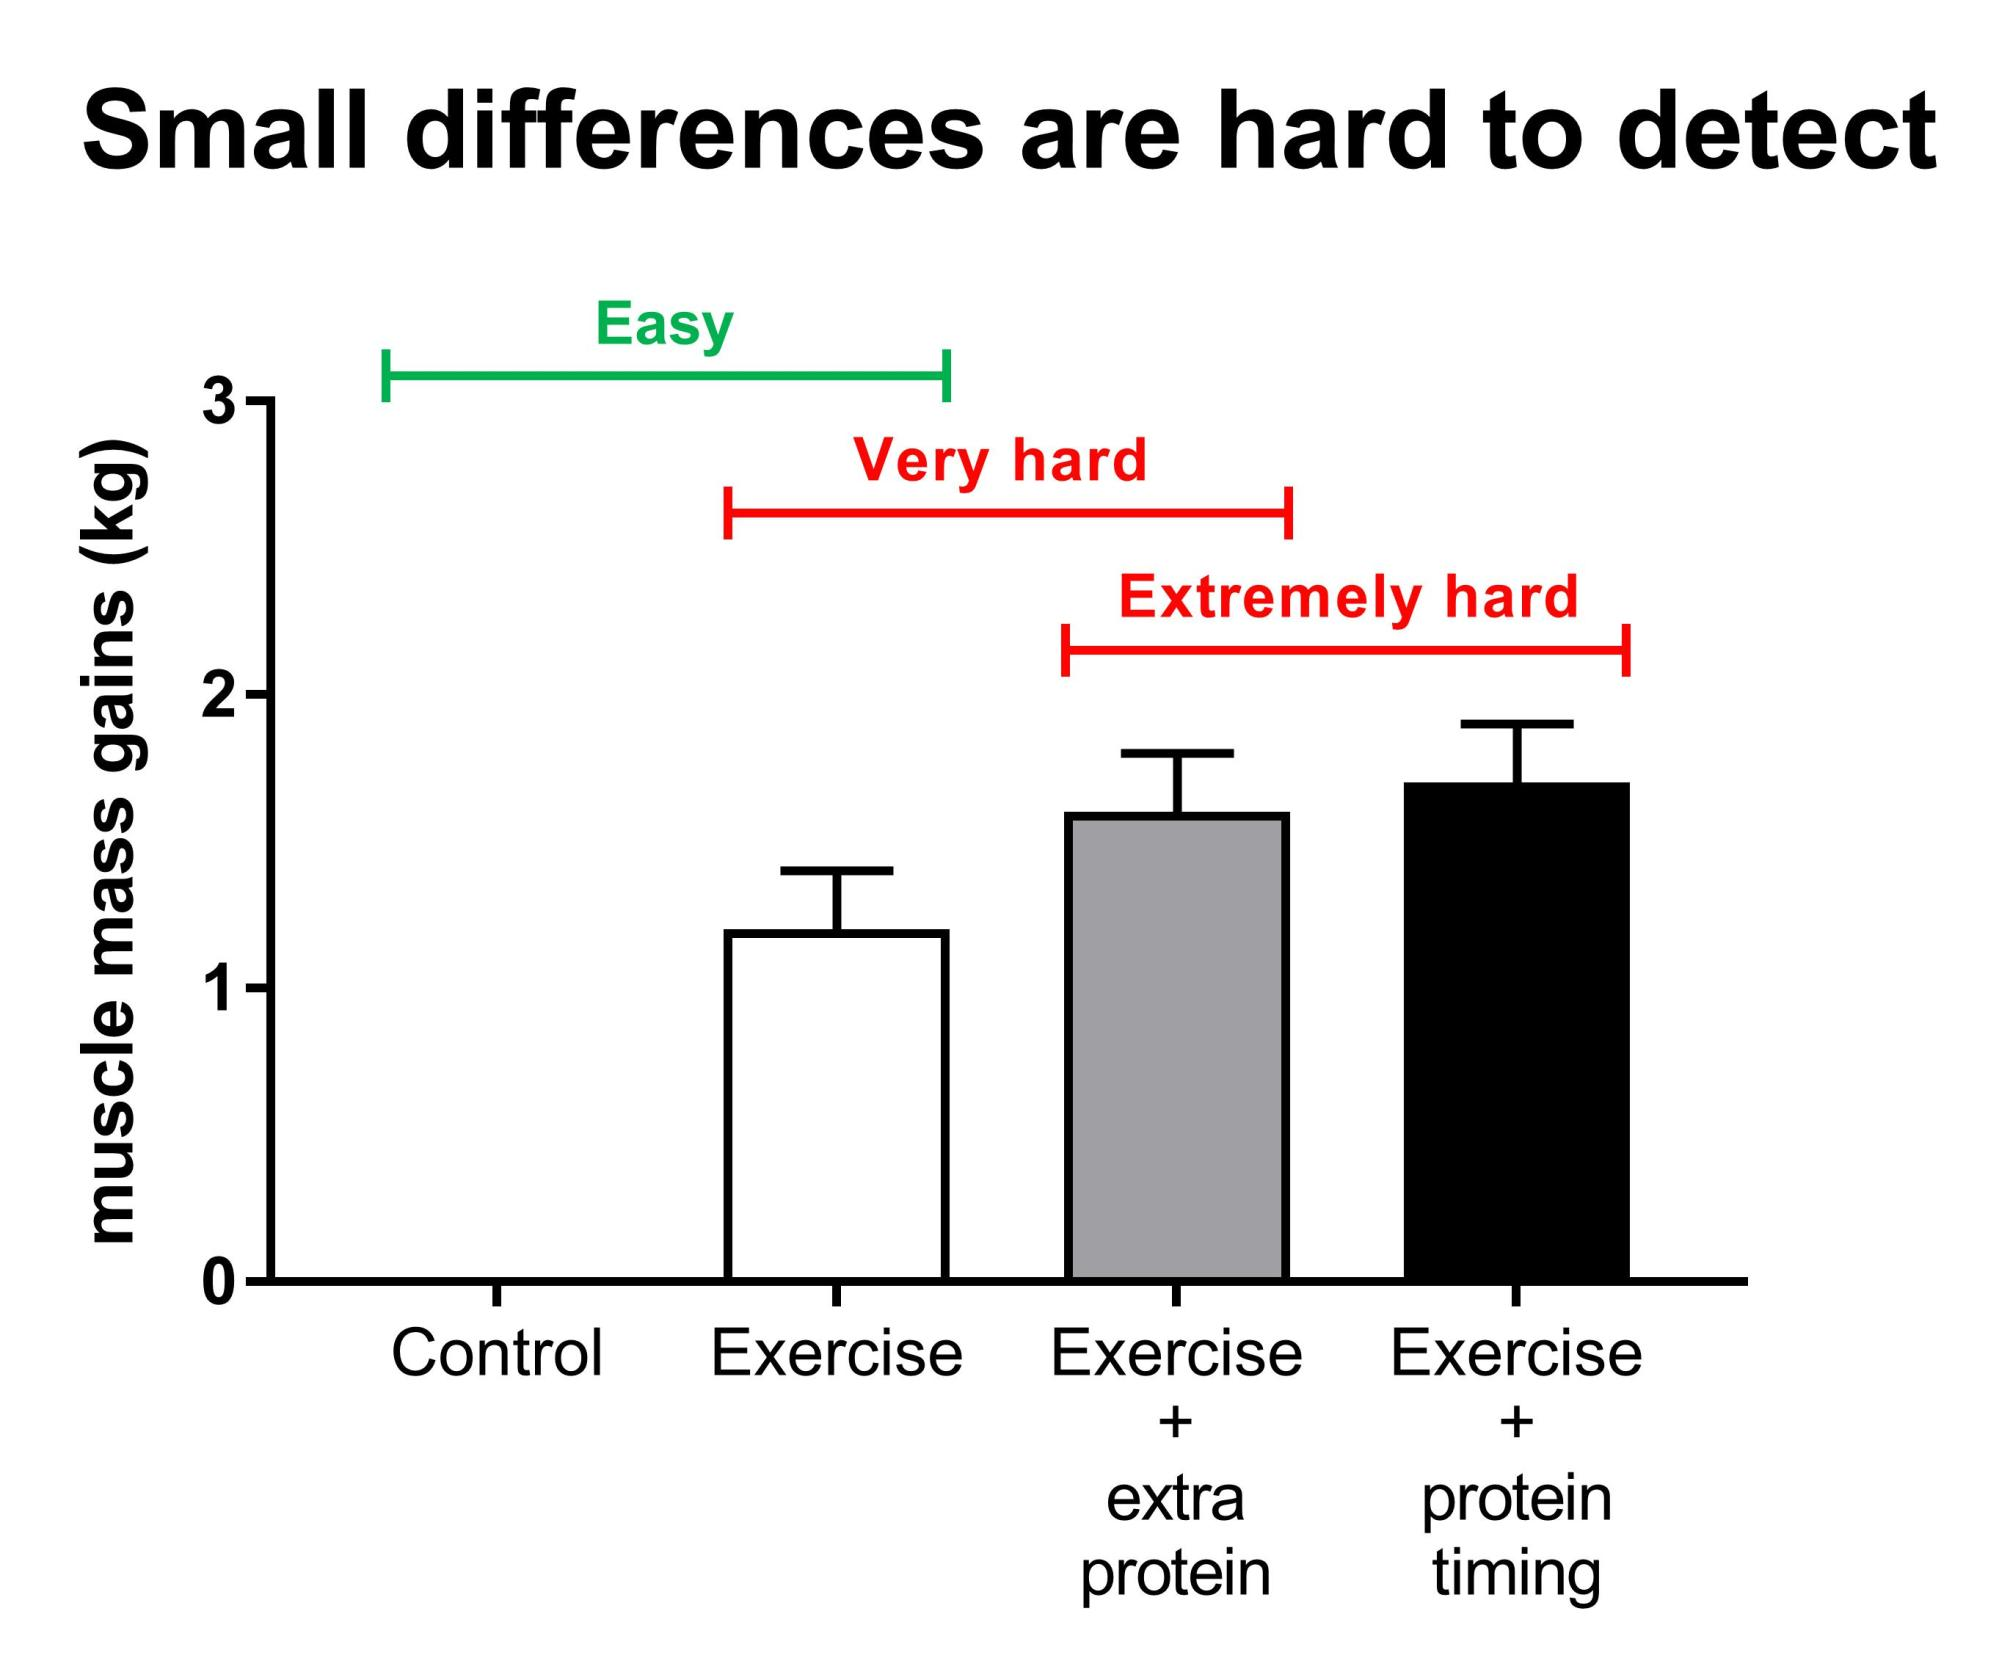 hight resolution of figure 16 conceptual framework of the impact of exercise and protein supplementation on muscle mass gains exercise results in large muscle mass gains and